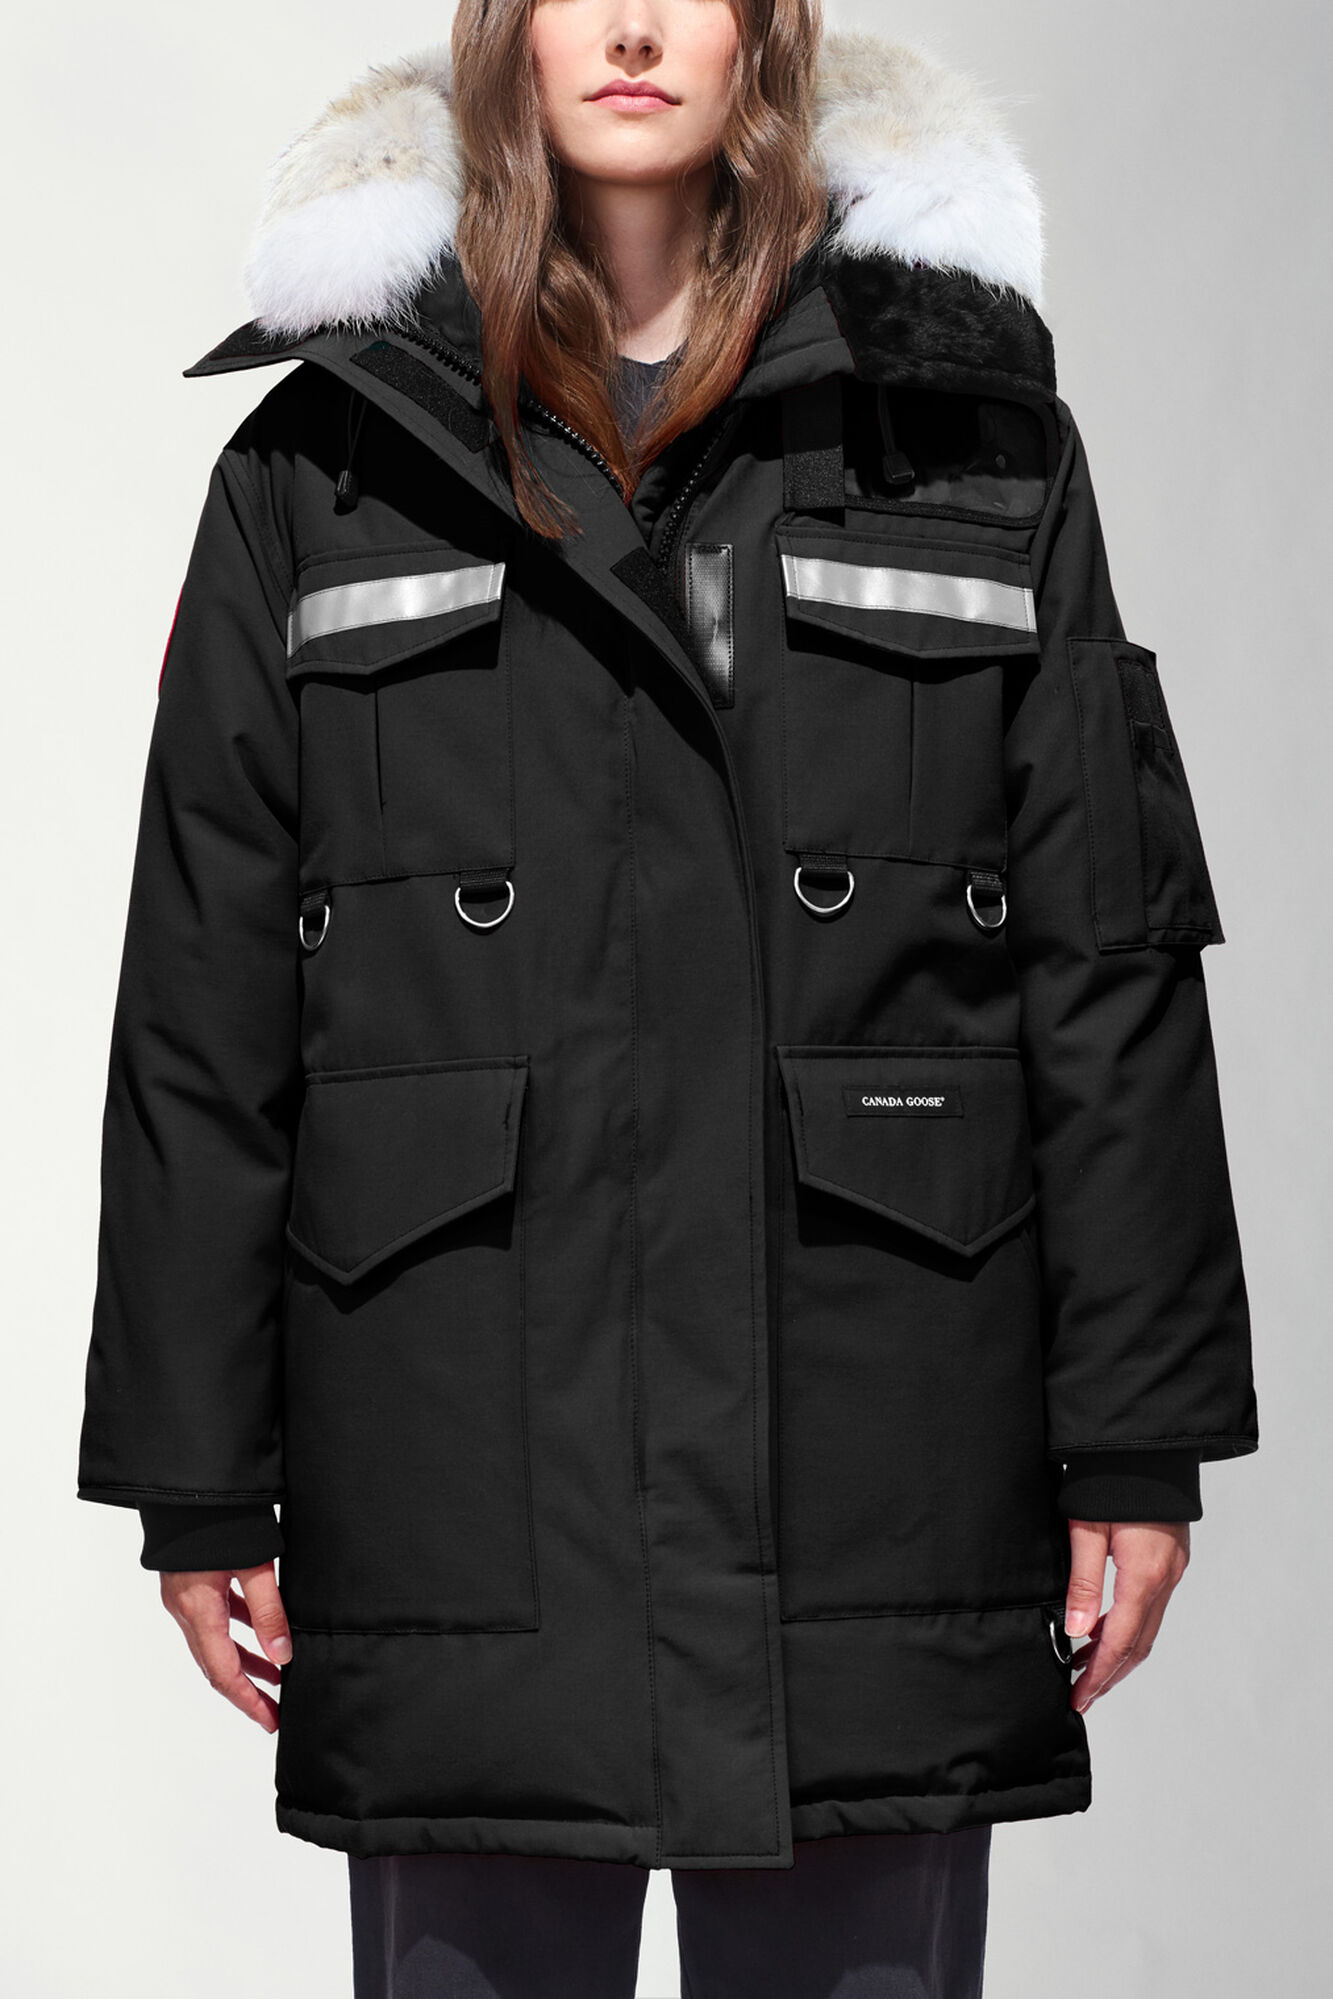 Canada Goose mens replica store - Women's Arctic Program Resolute Parka | Canada Goose?